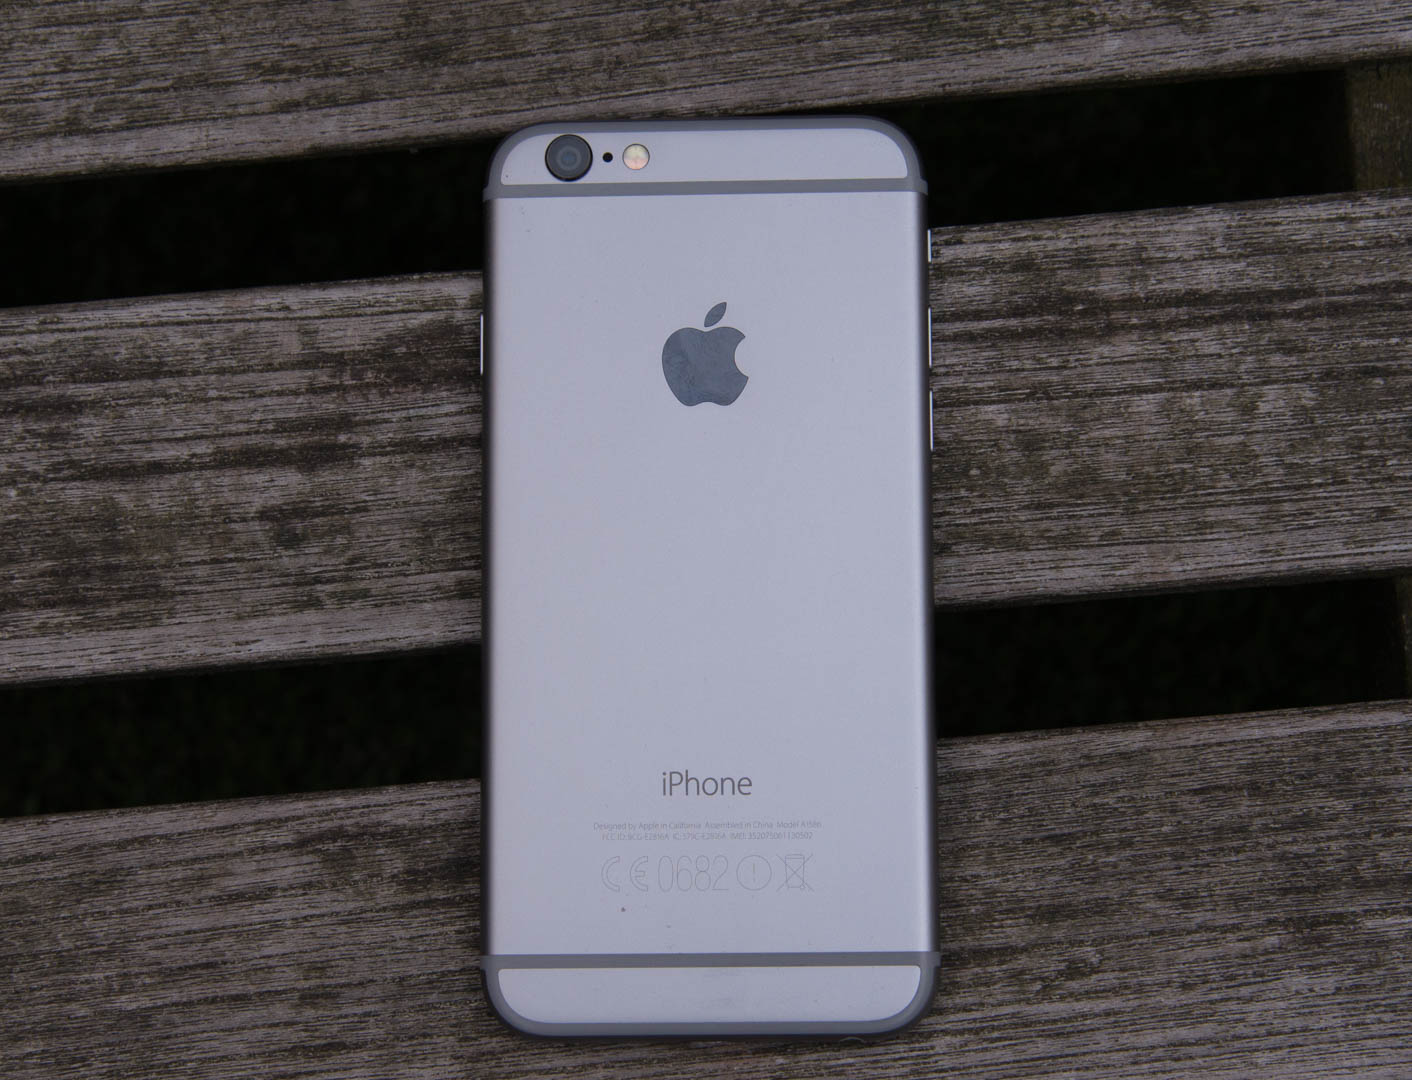 Apple IPhone 6 Review A Good That Belongs In The Past